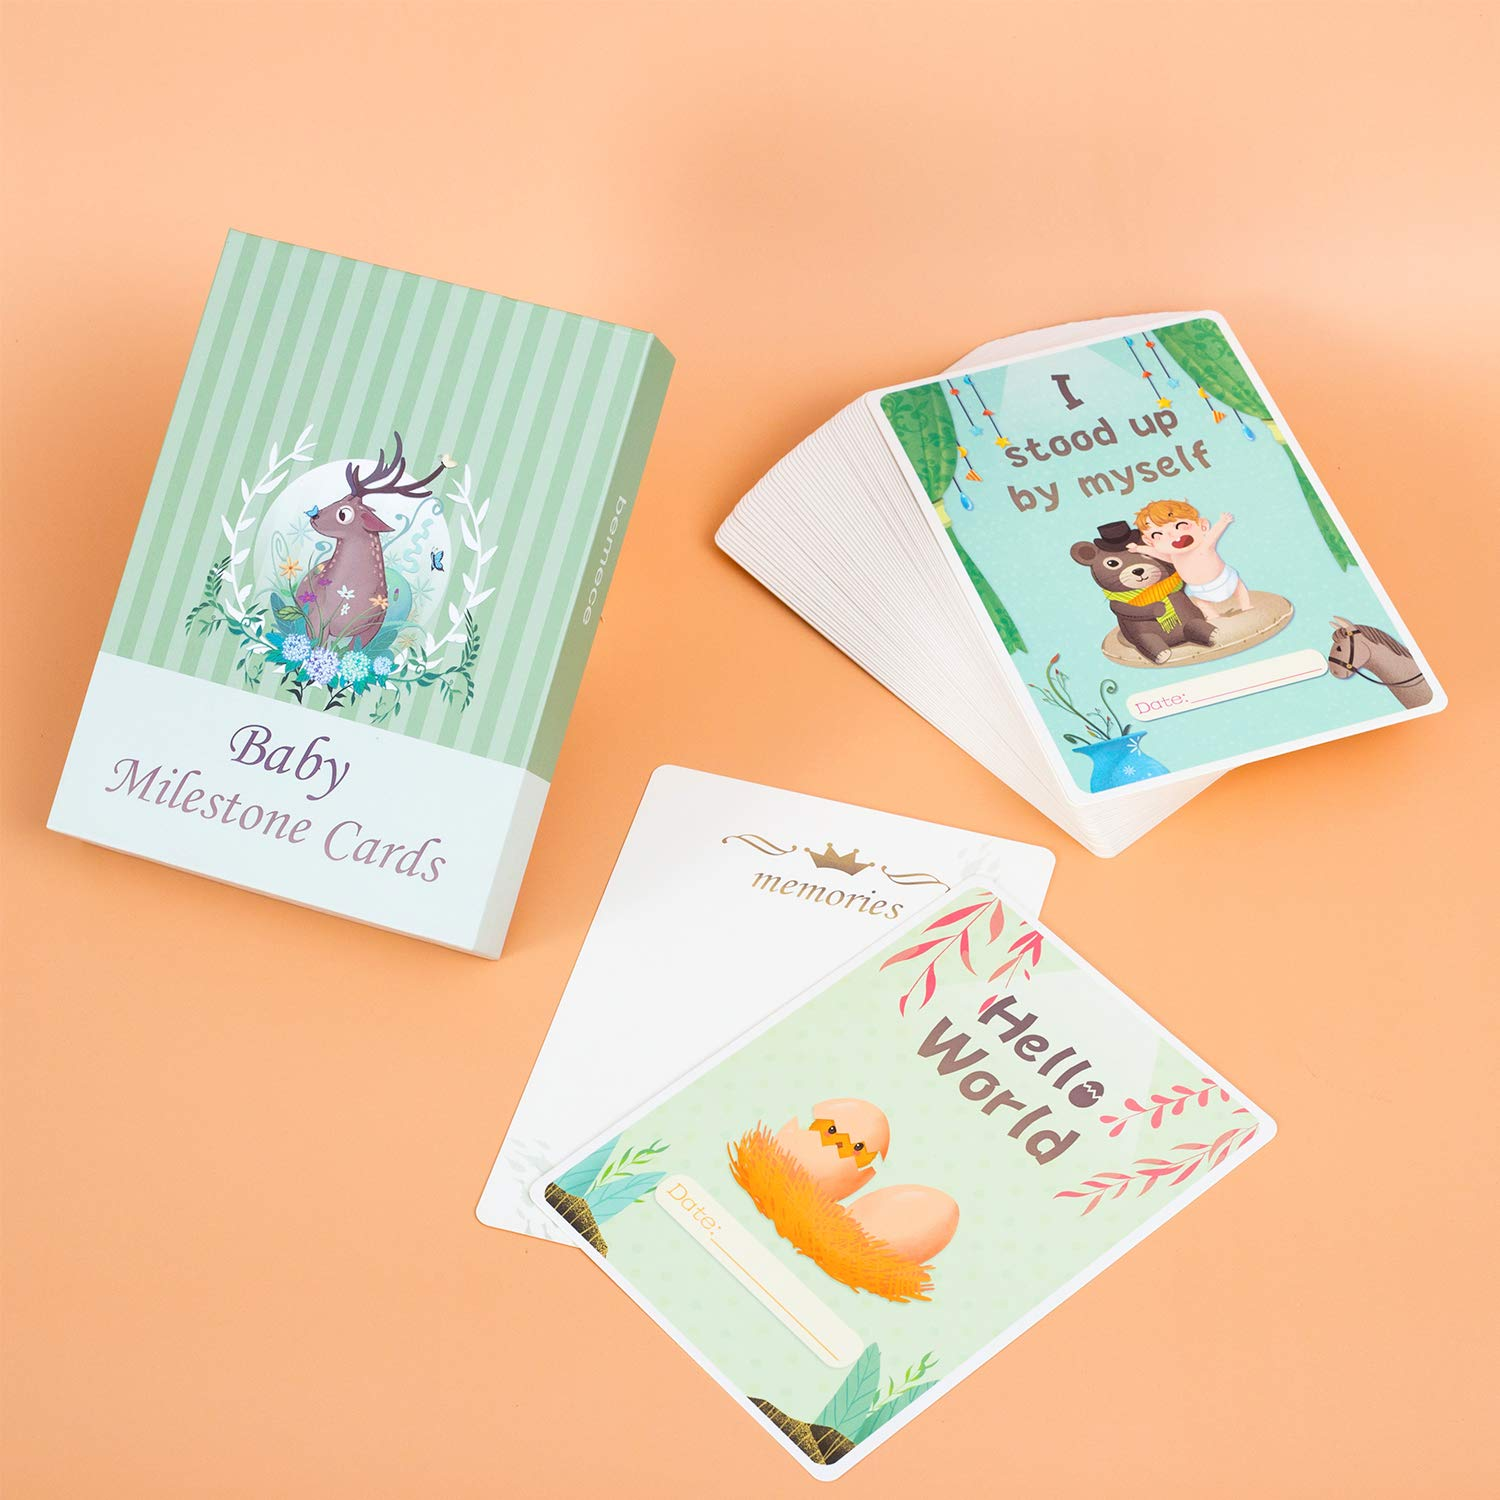 Baby Milestone Cards /& Keepsake Box 50 Unisex Landmark Moment Photo Cards Including Key Age Markers /& Unique Firsts Perfect Baby Shower Gift Set with Original Pattern and Color Designs by bemece